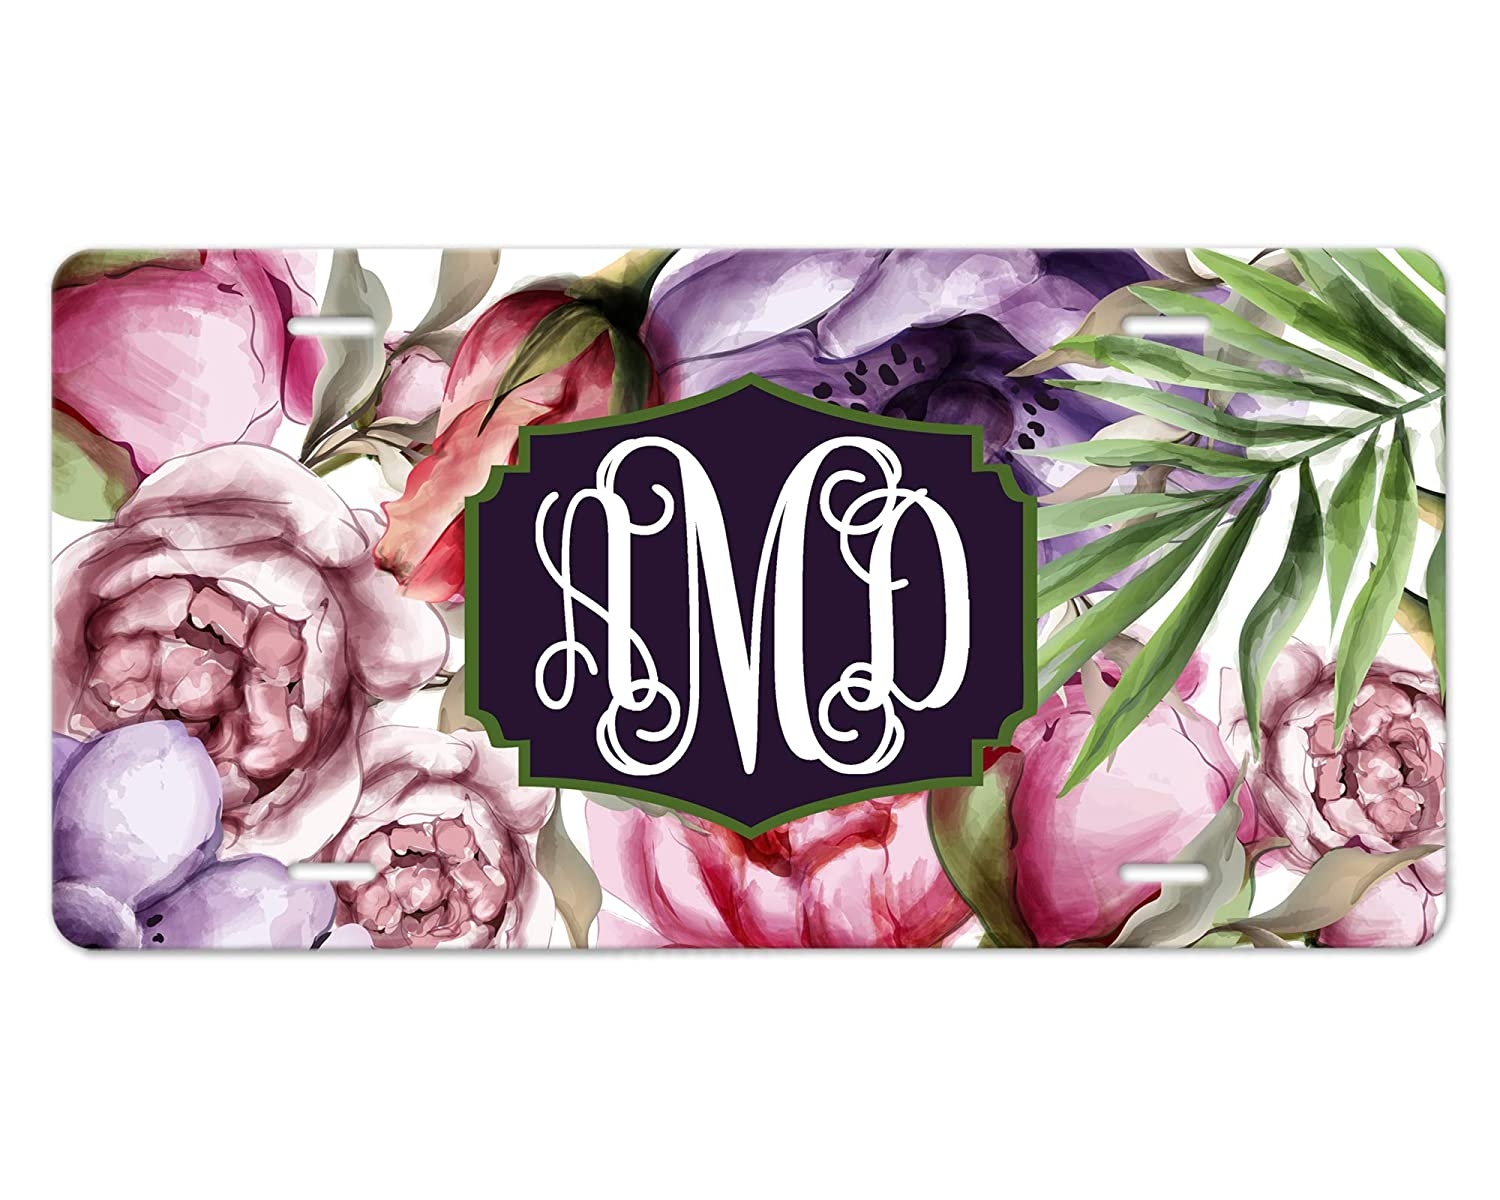 Made-to-Order License Plate Vehicle 25% OFF safety Floral Leafy Watercolor Tag